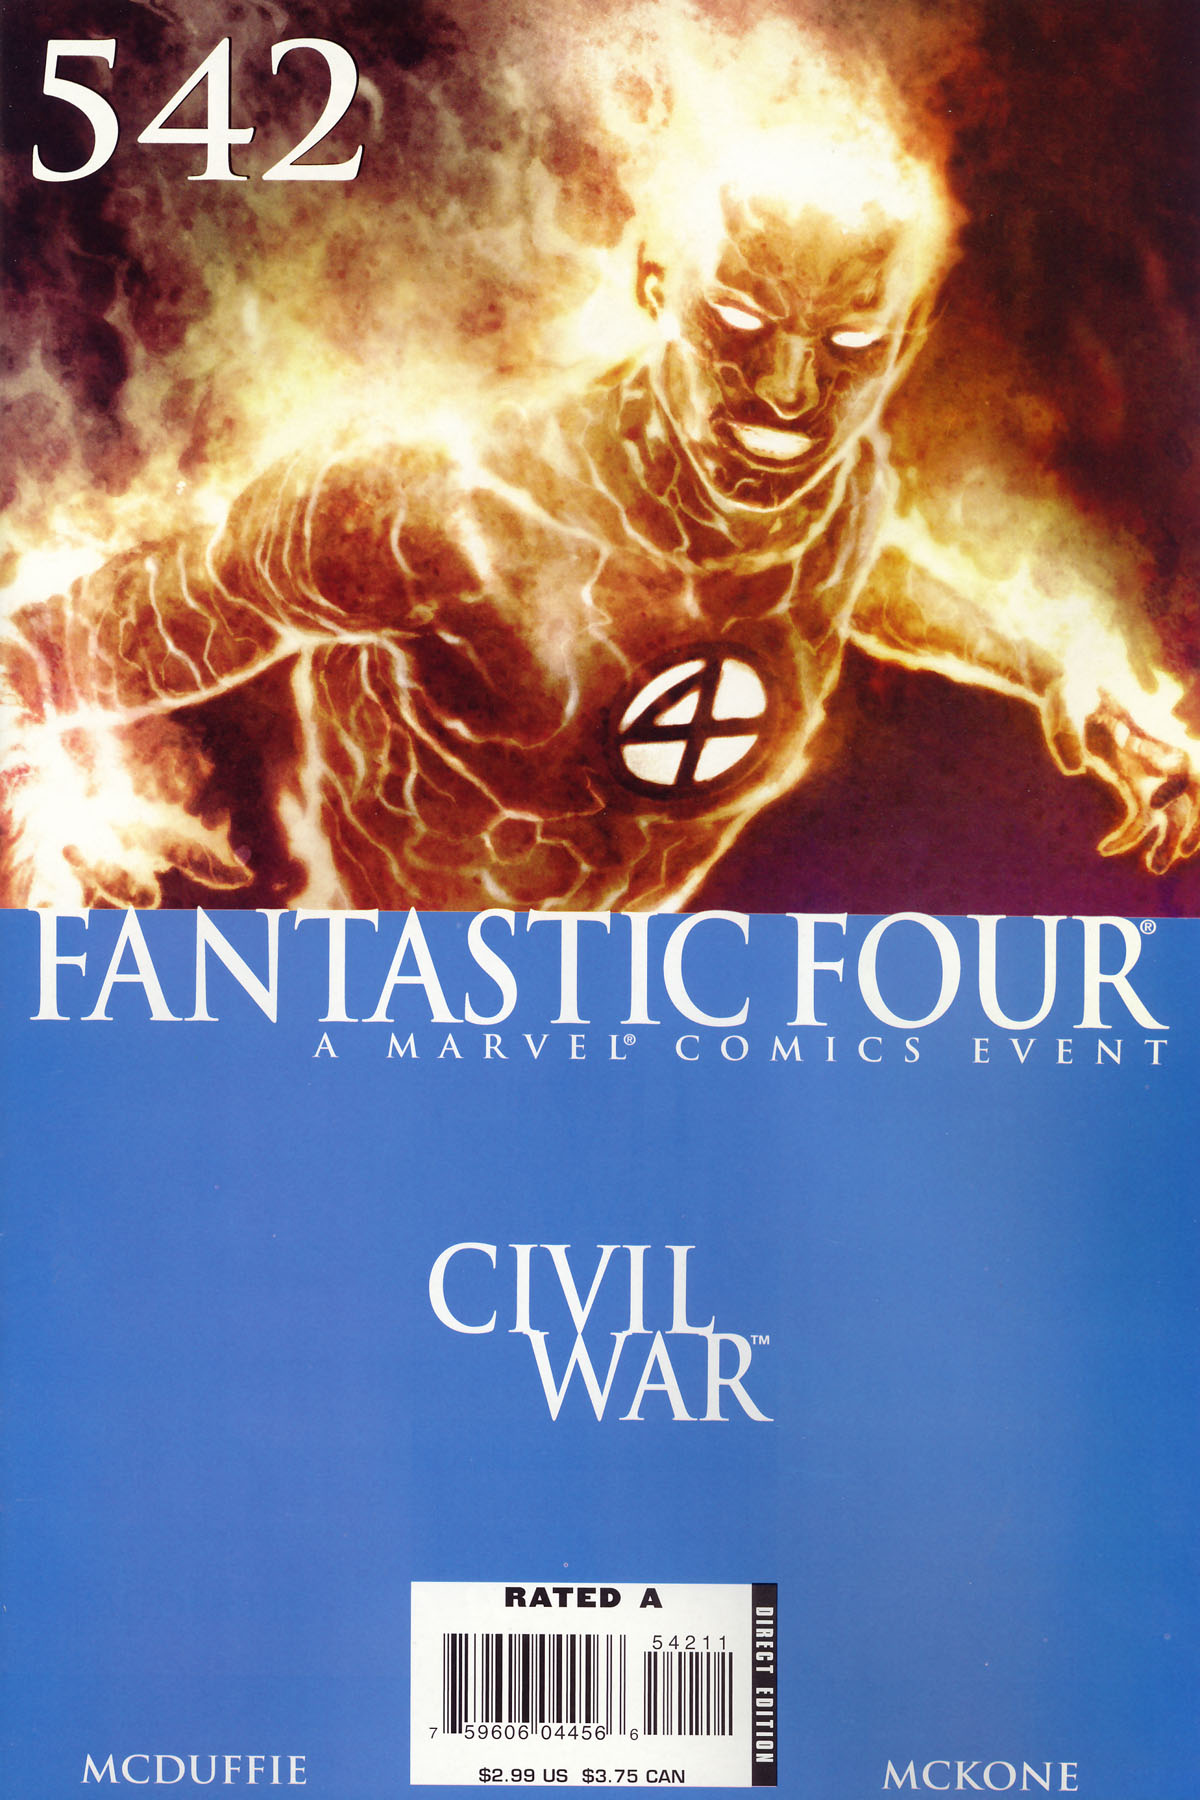 Fantastic Four #542 cover by Adi Granov